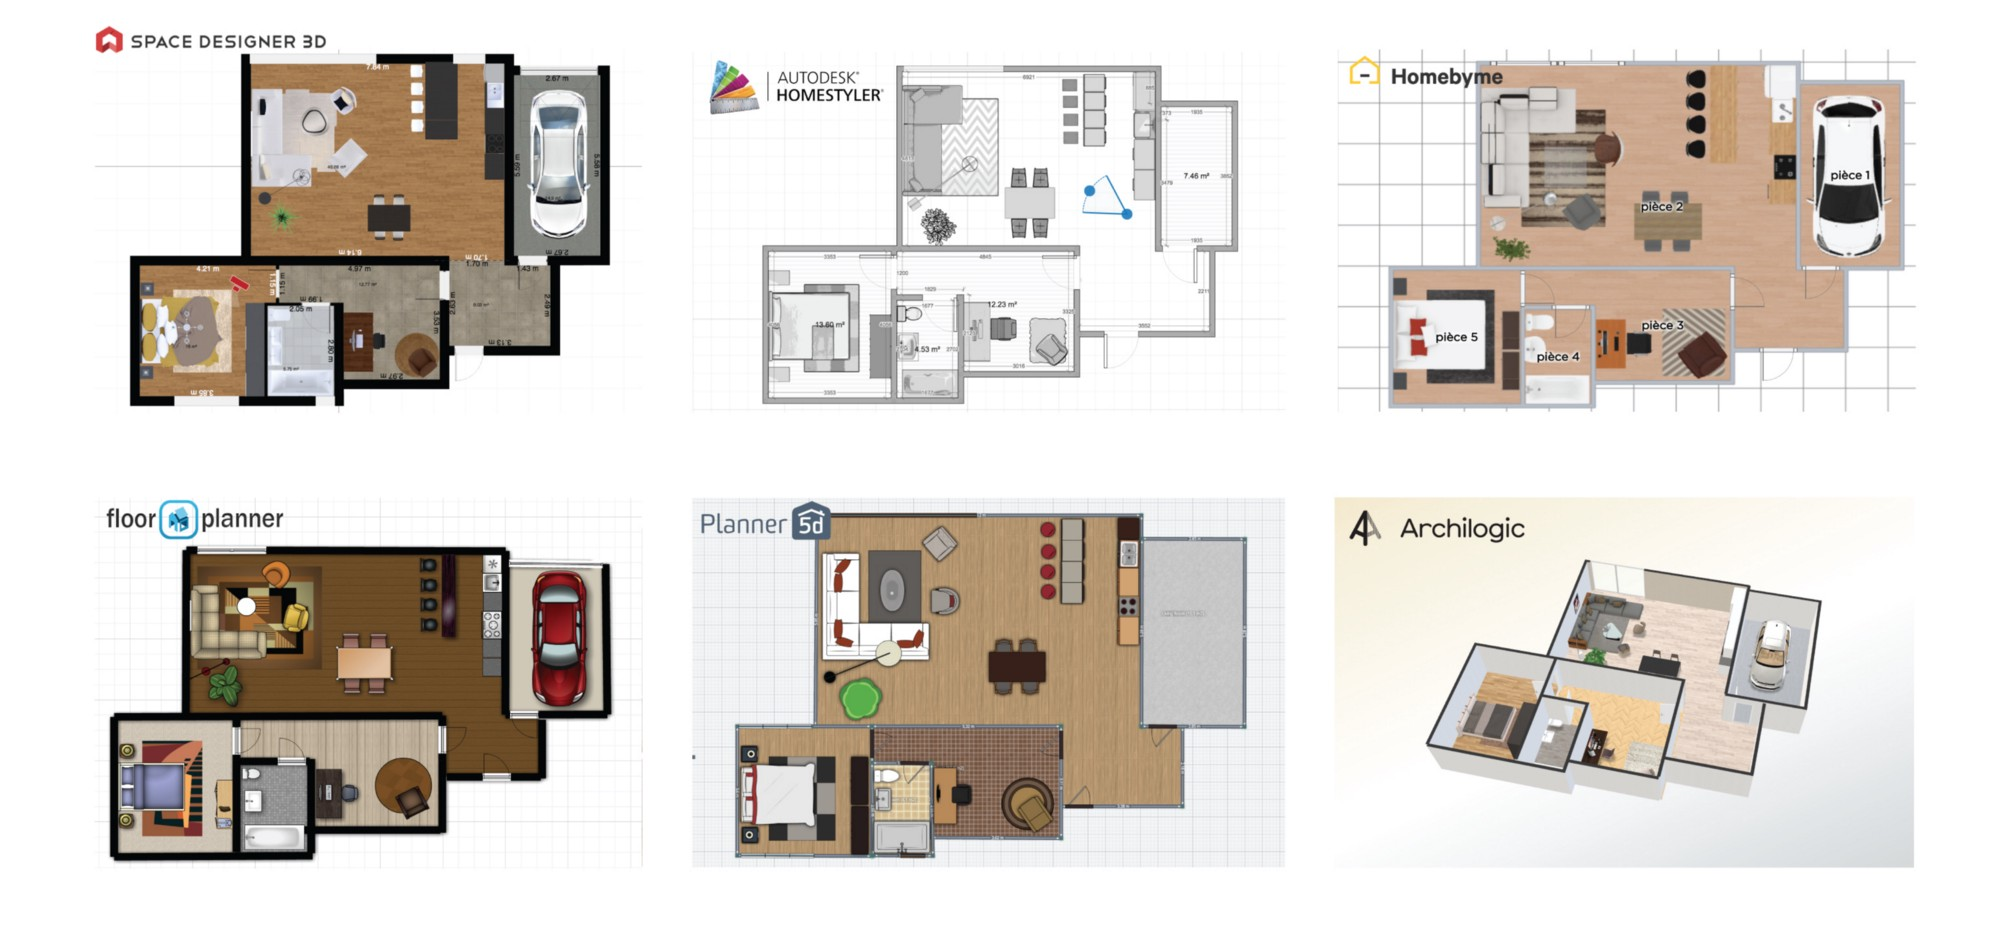 Space Designer 3d Vs Giants Of Floor Planning Space: online 3d floor plan creator